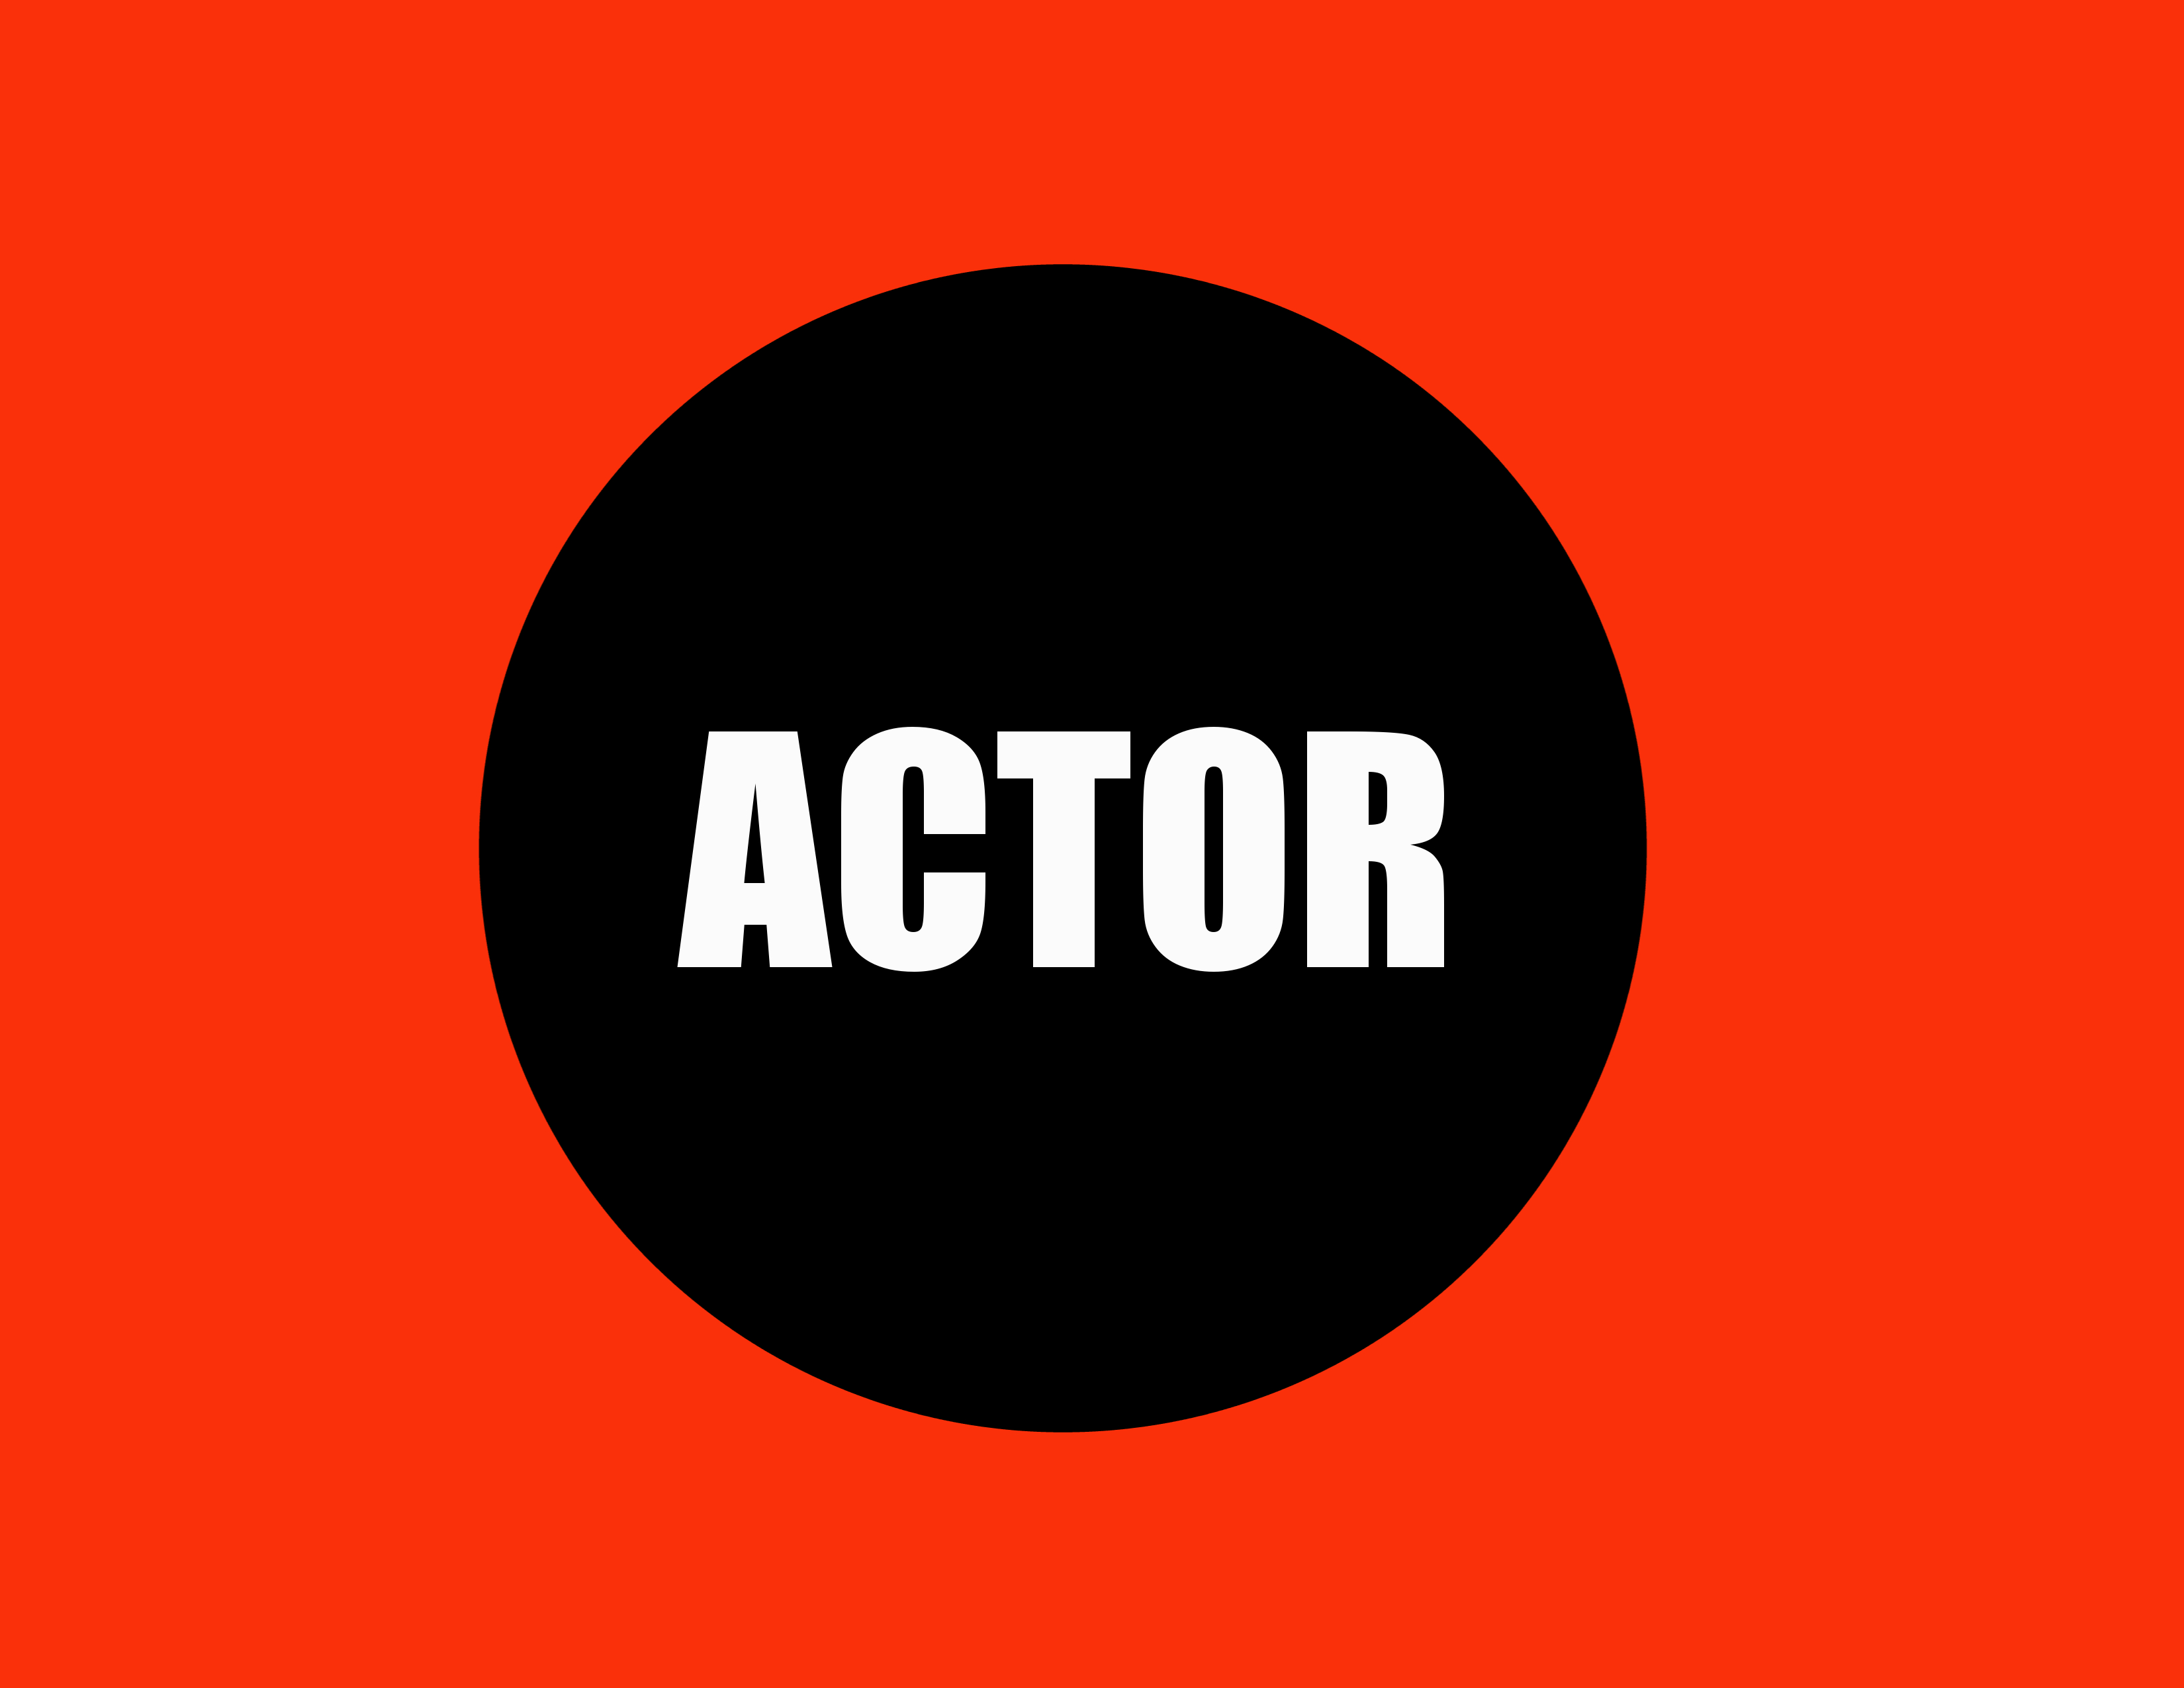 ACTOR TILE